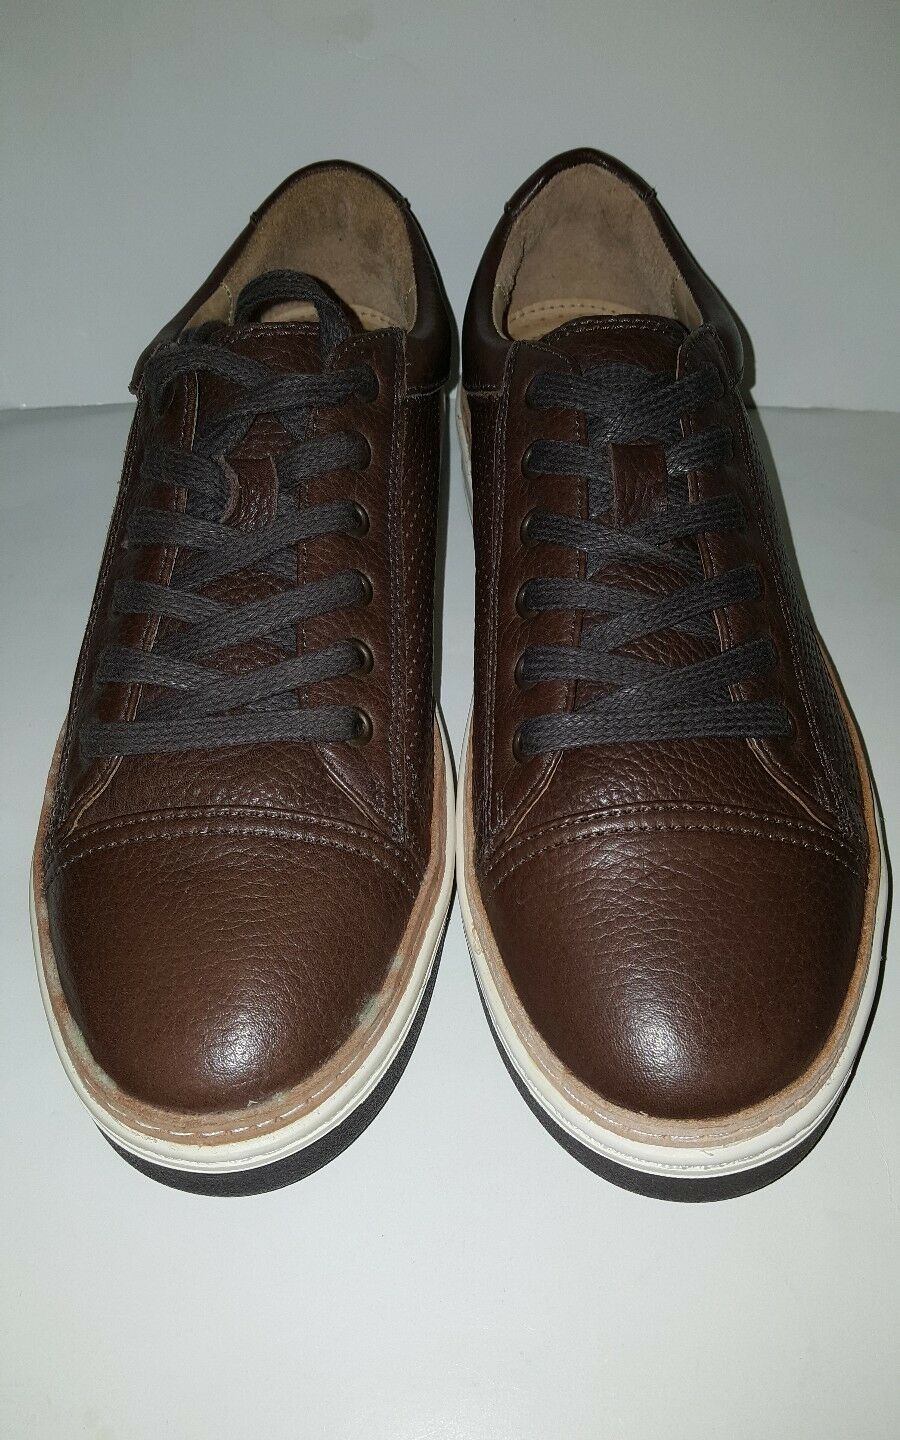 GH BASS DASH Uomo Uomo Uomo SNEAKERS;BROWN;1050-2890-200 7ddffd